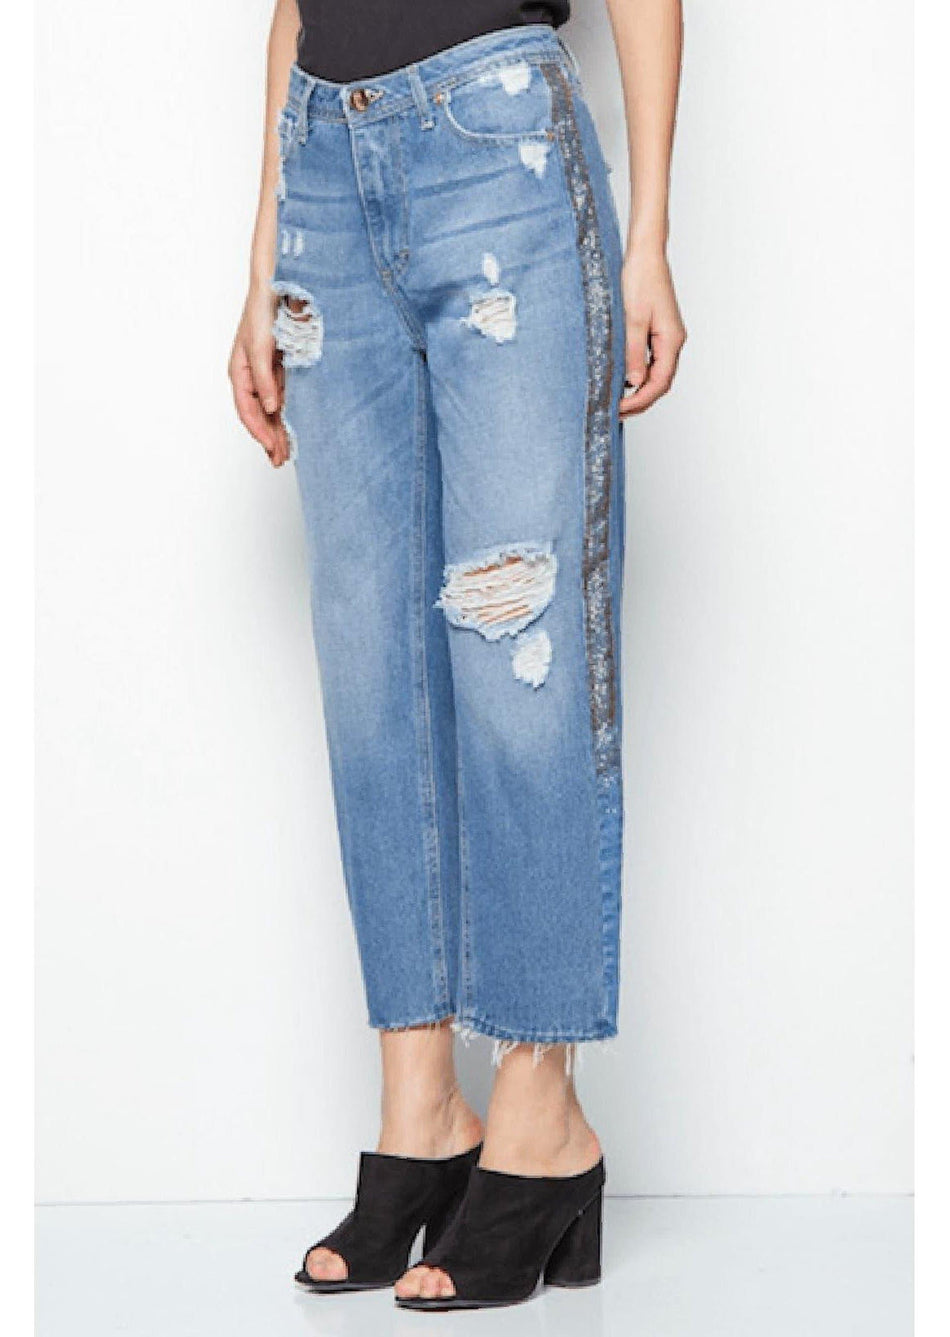 jeans bande laterali REVISE BLUE VIBES - Vittorio Citro Boutique